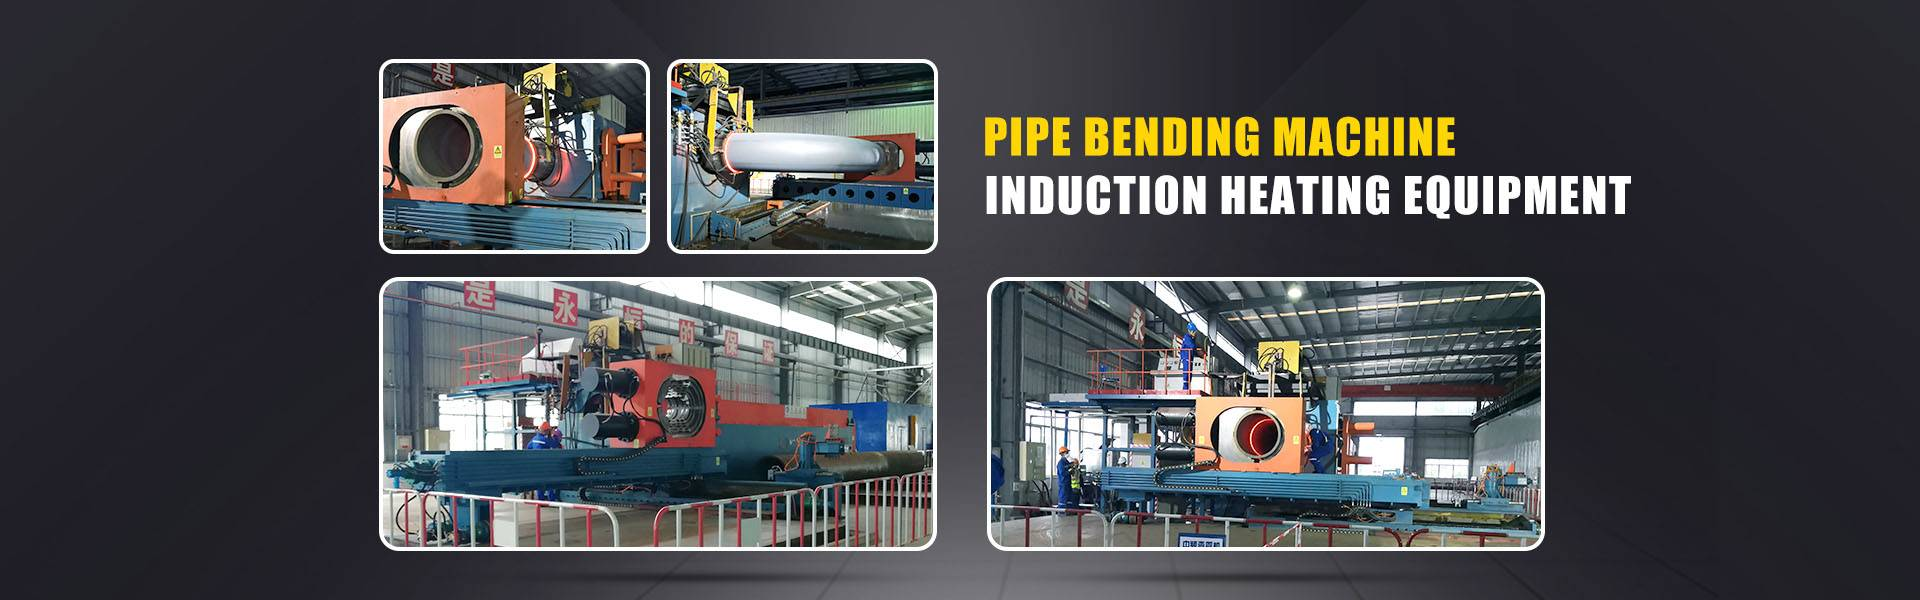 PIPE lenturan Mesin